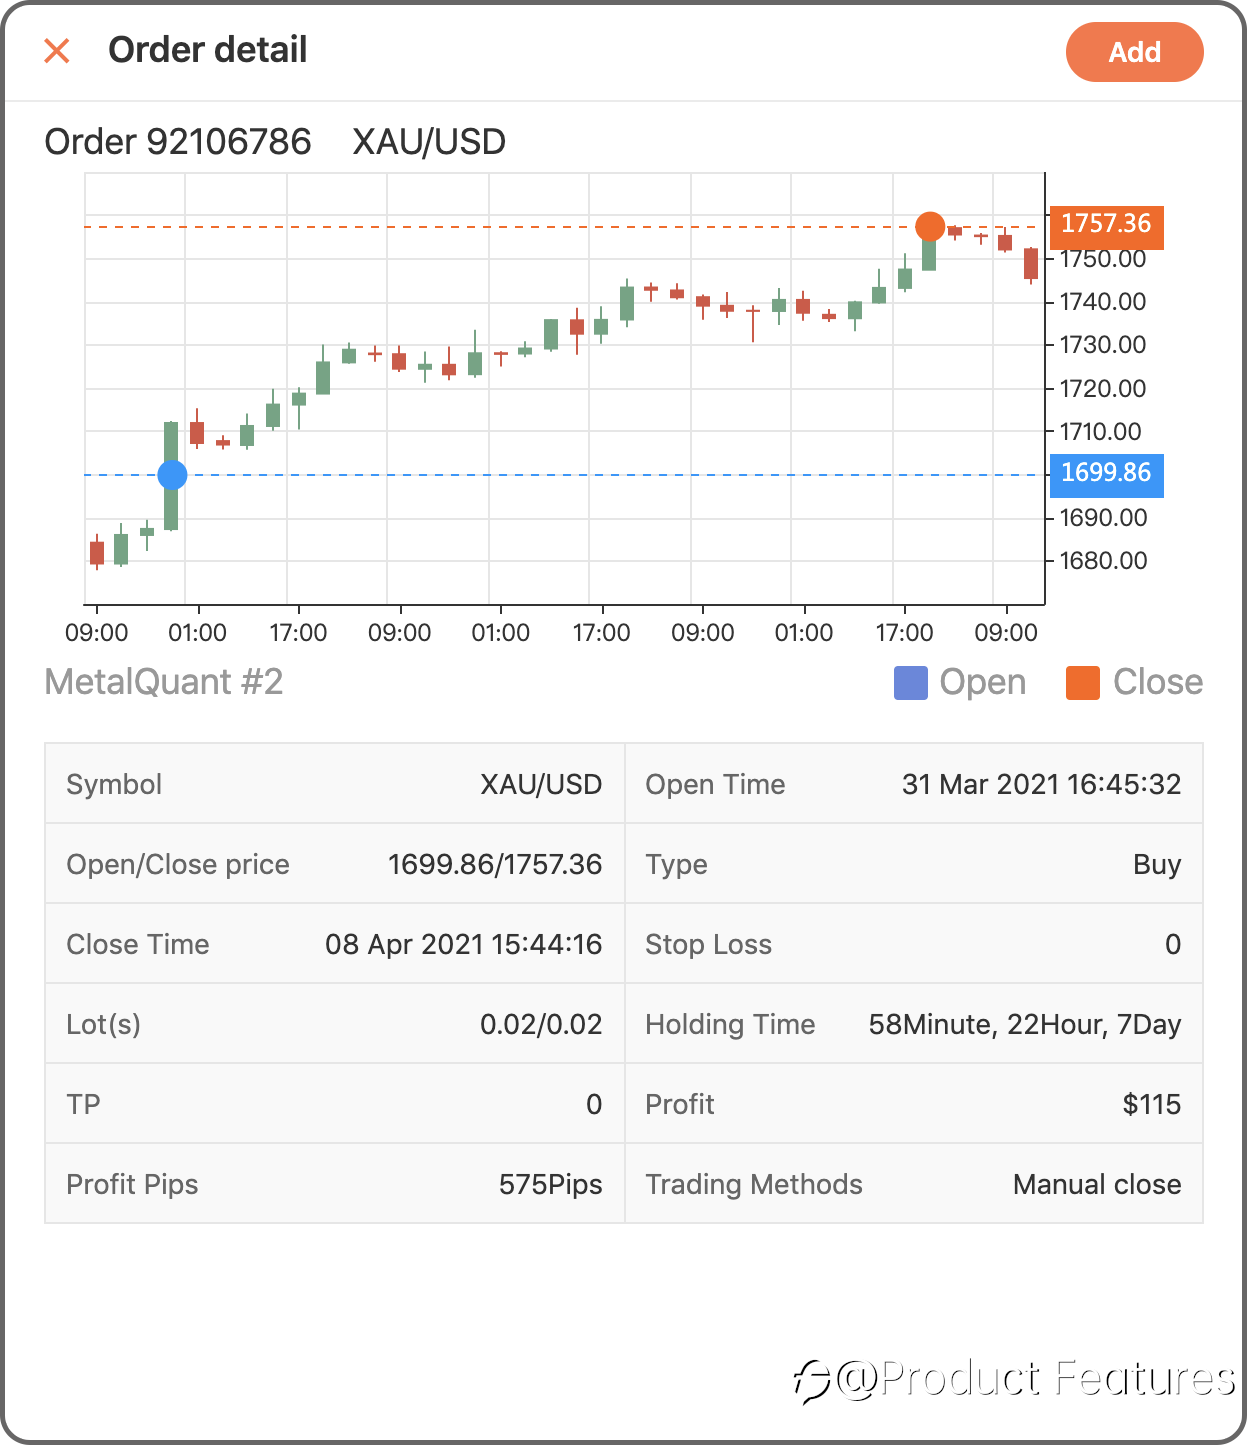 How to Add Trading Order or Trading Record